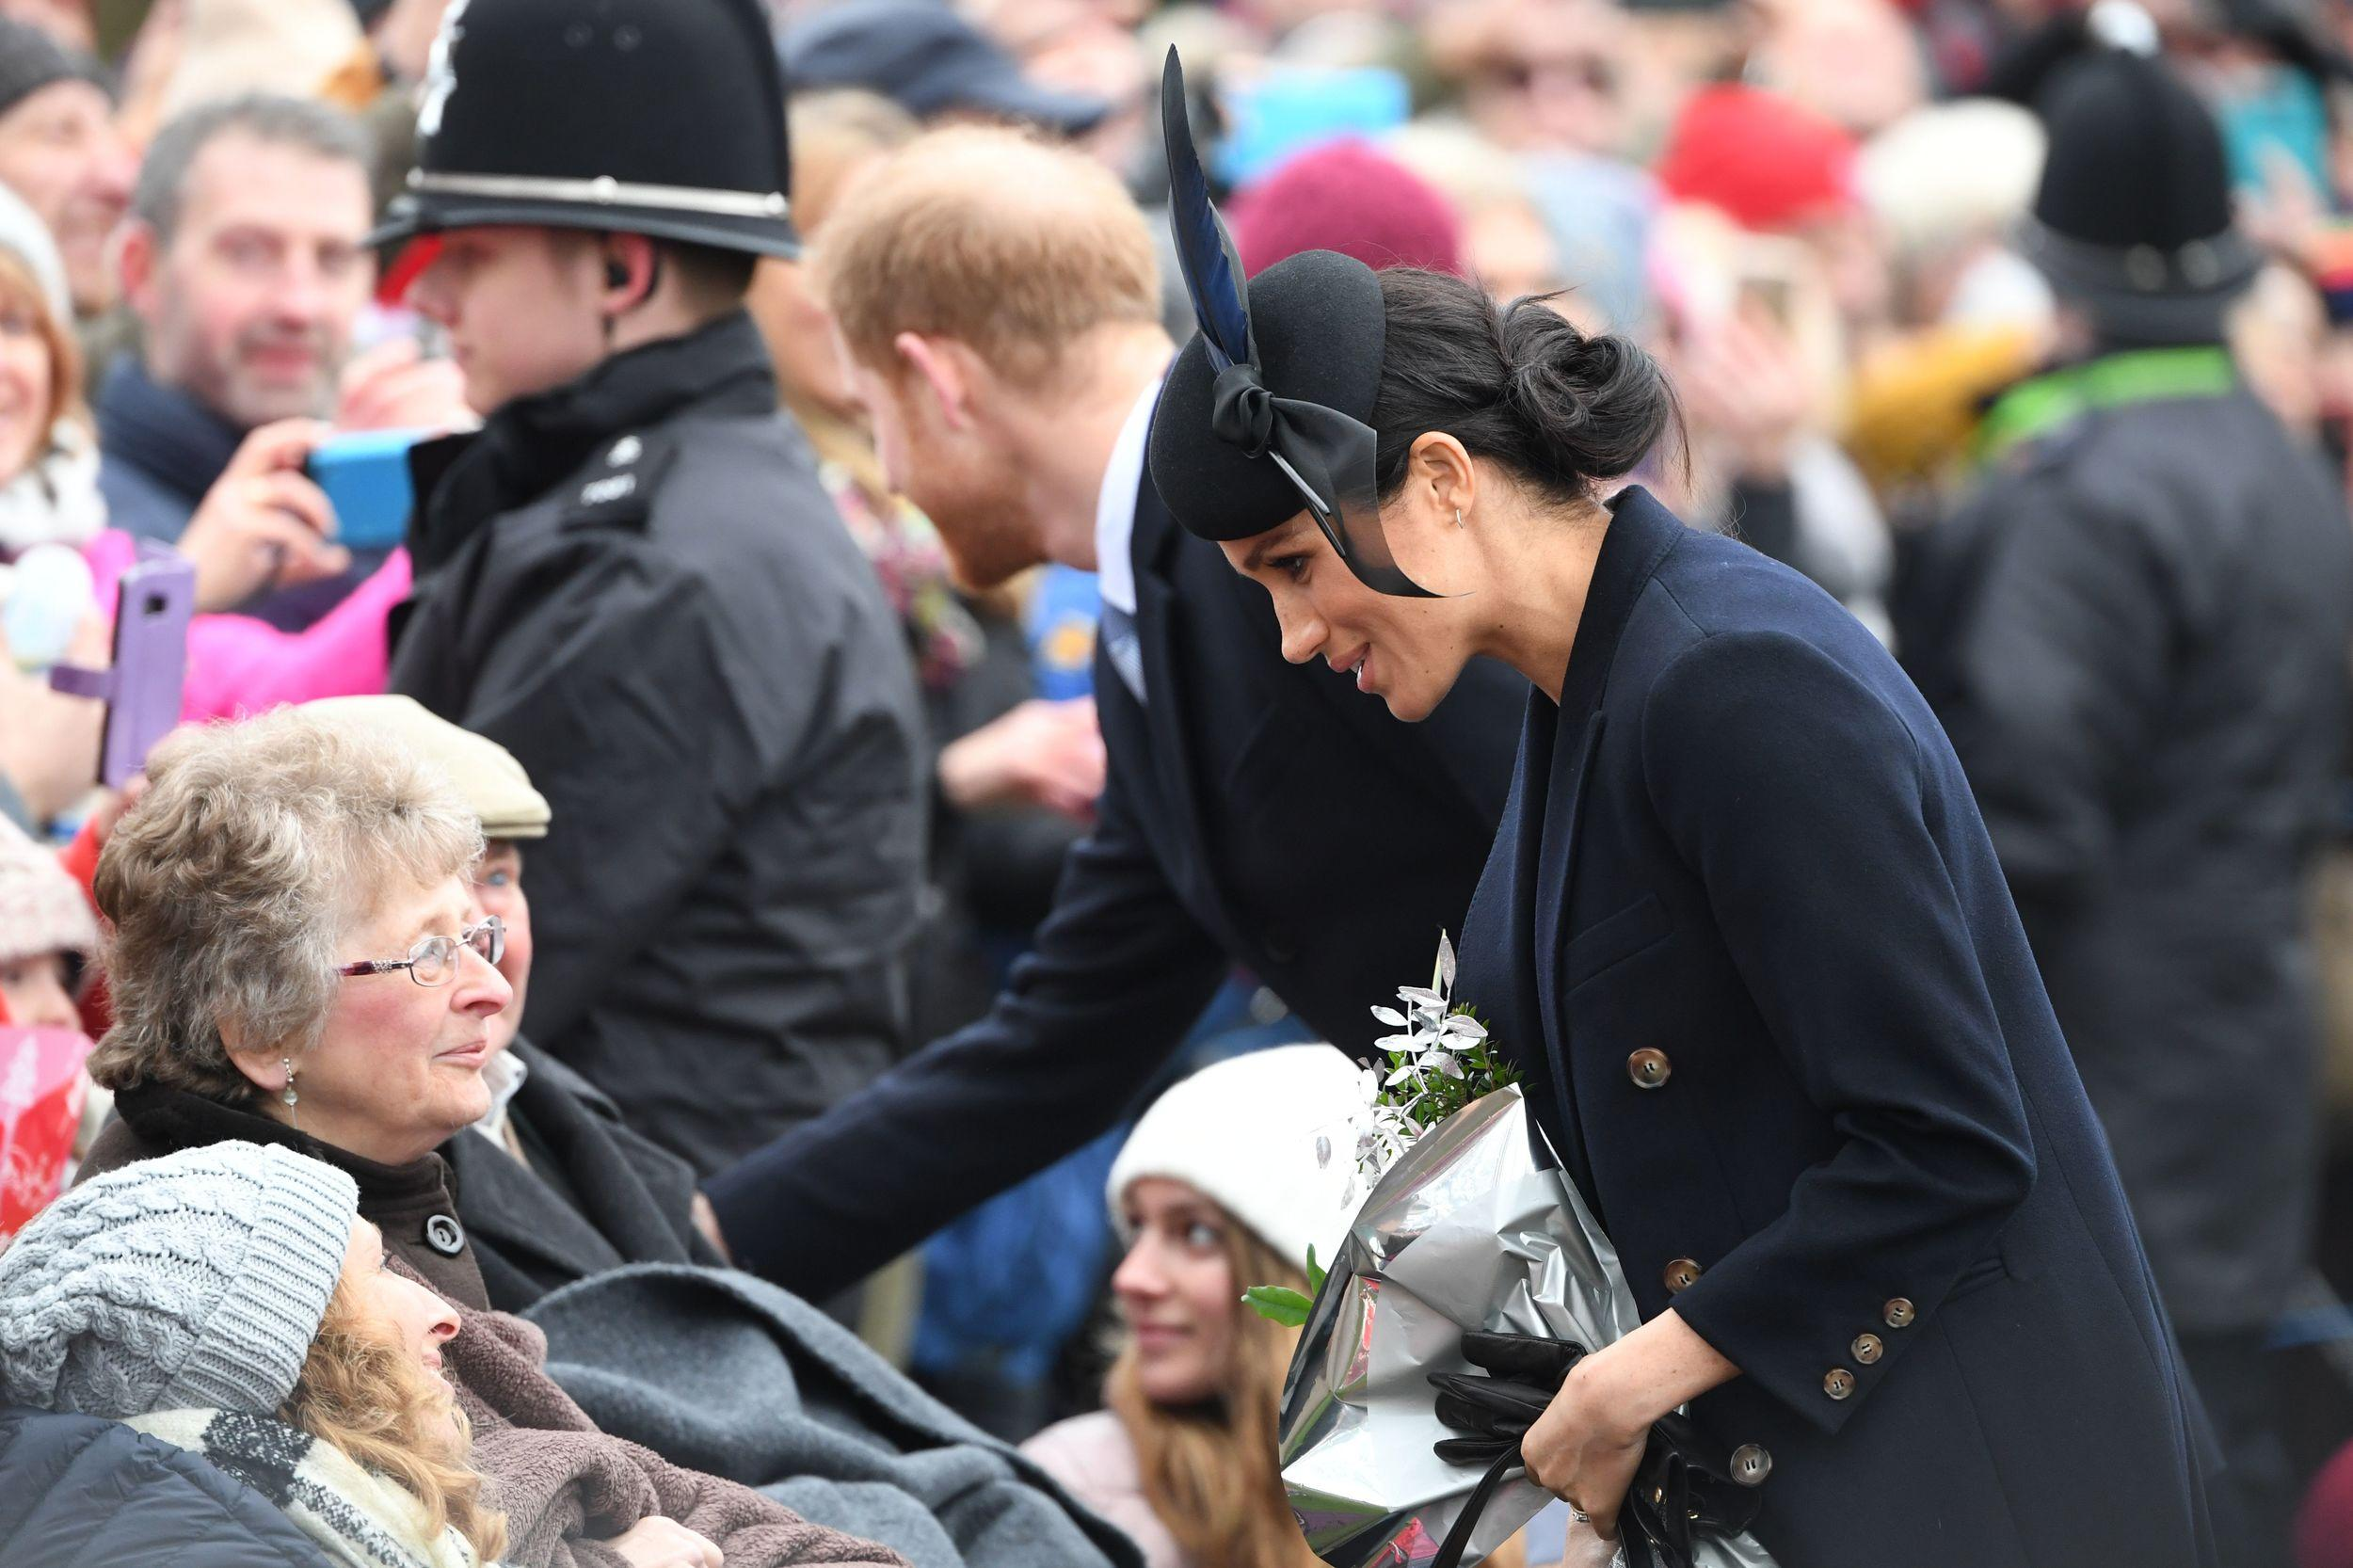 Meghan, Duchess of Sussex and Britain's Prince Harry, Duke of Sussex,   greet wellwishers after the Royal Family's traditional Christmas Day service at St Mary Magdalene Church in Sandringham, Norfolk, eastern England, on December 25, 2018. (Photo by Paul ELLIS / AFP)        (Photo credit should read PAUL ELLIS/AFP/Getty Images)